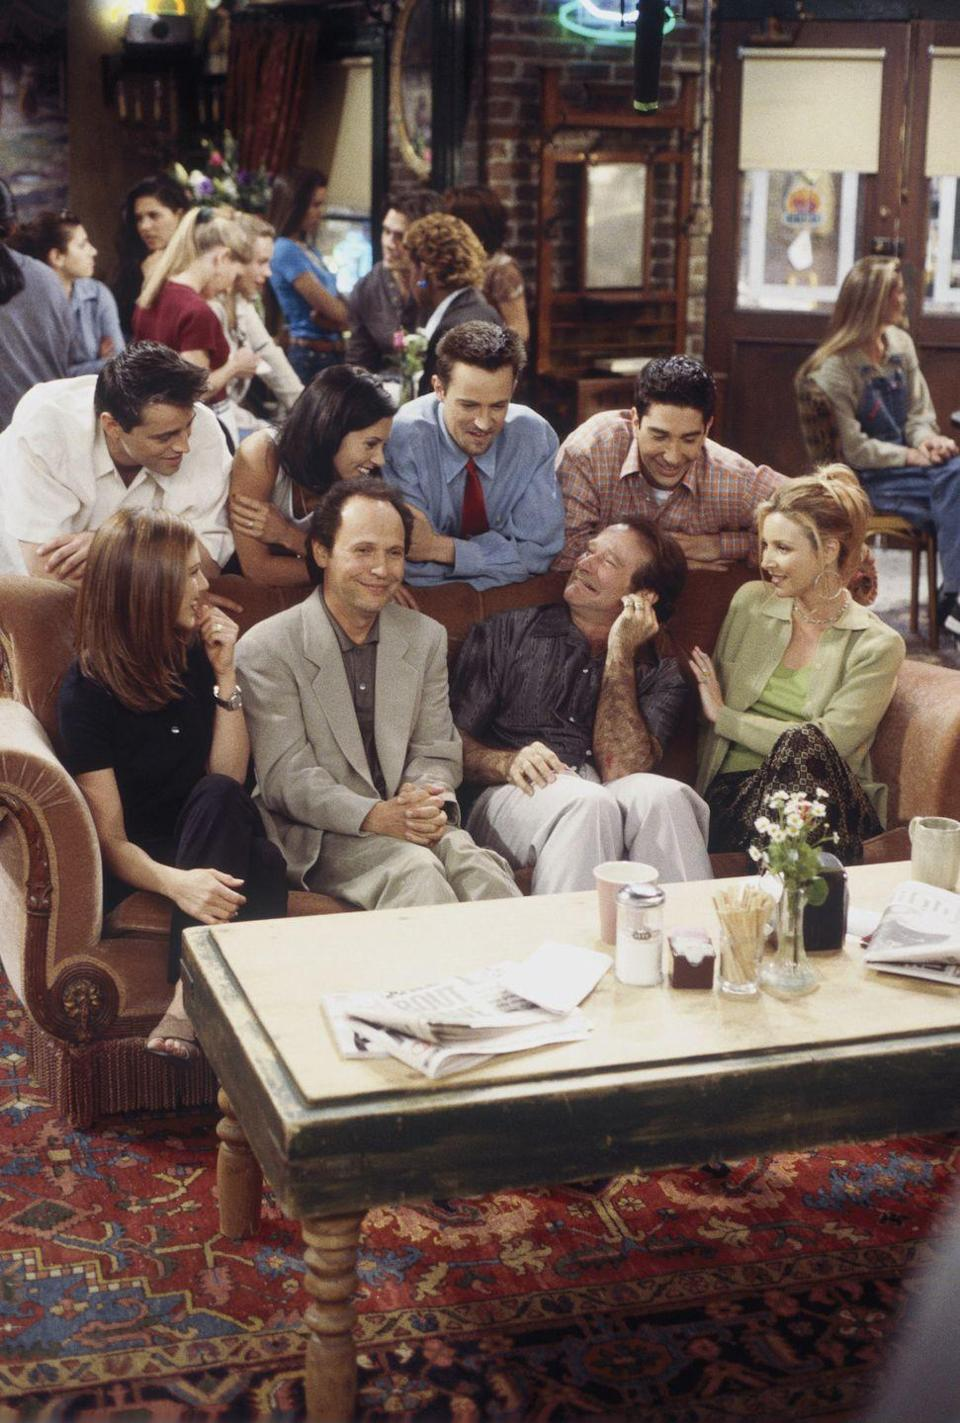 """<p>It was by chance that Billy Crystal and Robin Williams happened to be on the same lot as <em>Friends</em> when the cast was filming """"The One with the Ultimate Fighting Champion"""" in season 3. The comedians decided to stop by for a cup of coffee, during which an improvised conversation unfolds, leaving both the cast and audience in stitches.</p>"""